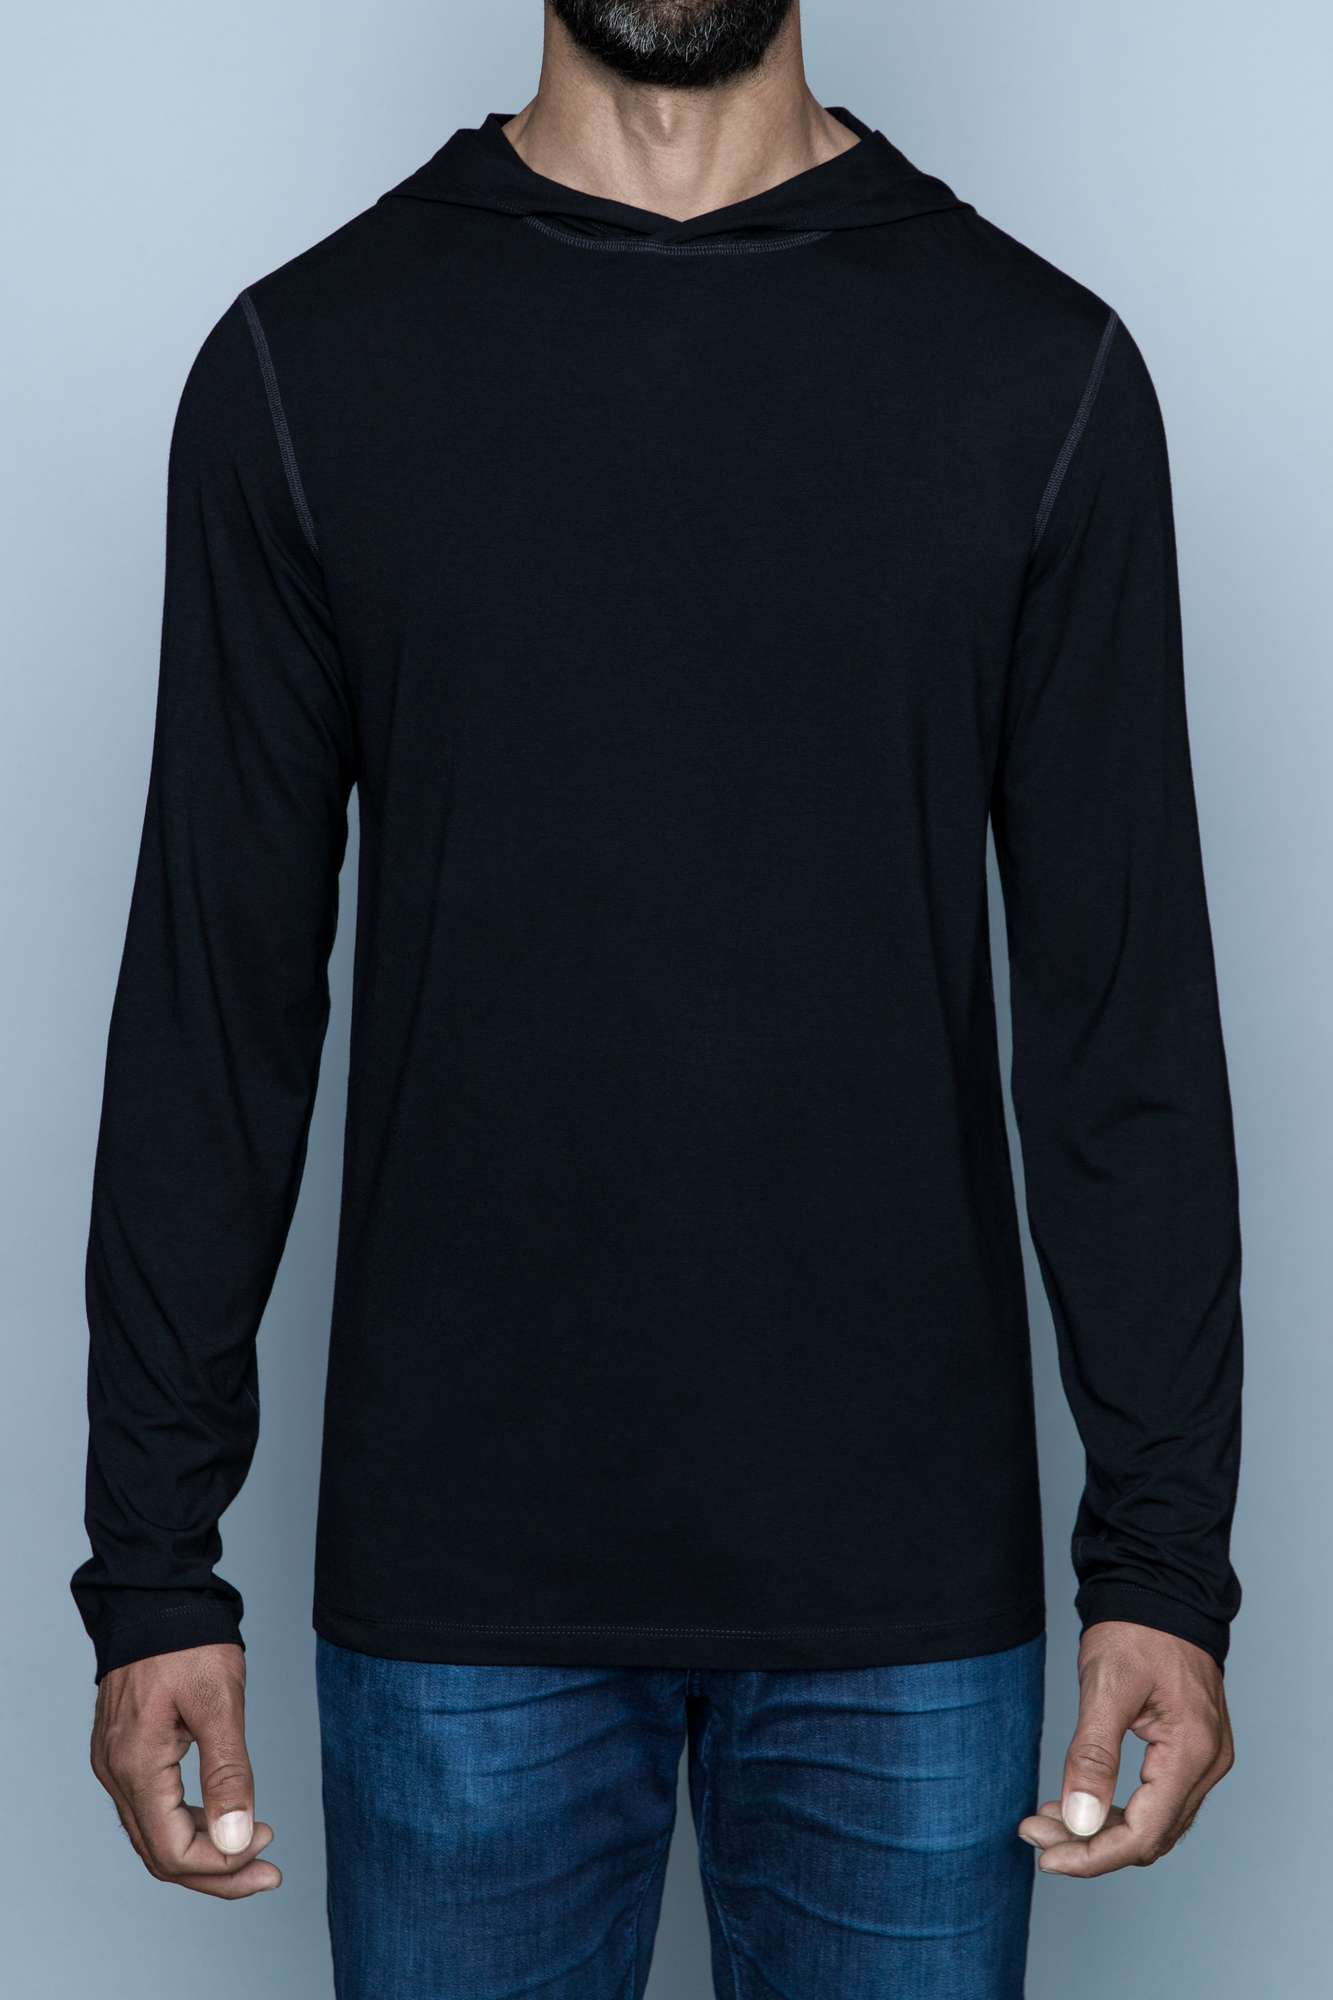 The Navas Lab Vasquez long-sleeve hooded shirt for tall guys in black. The perfect tall slim shirt for tall and slim guys looking for style and comfort.